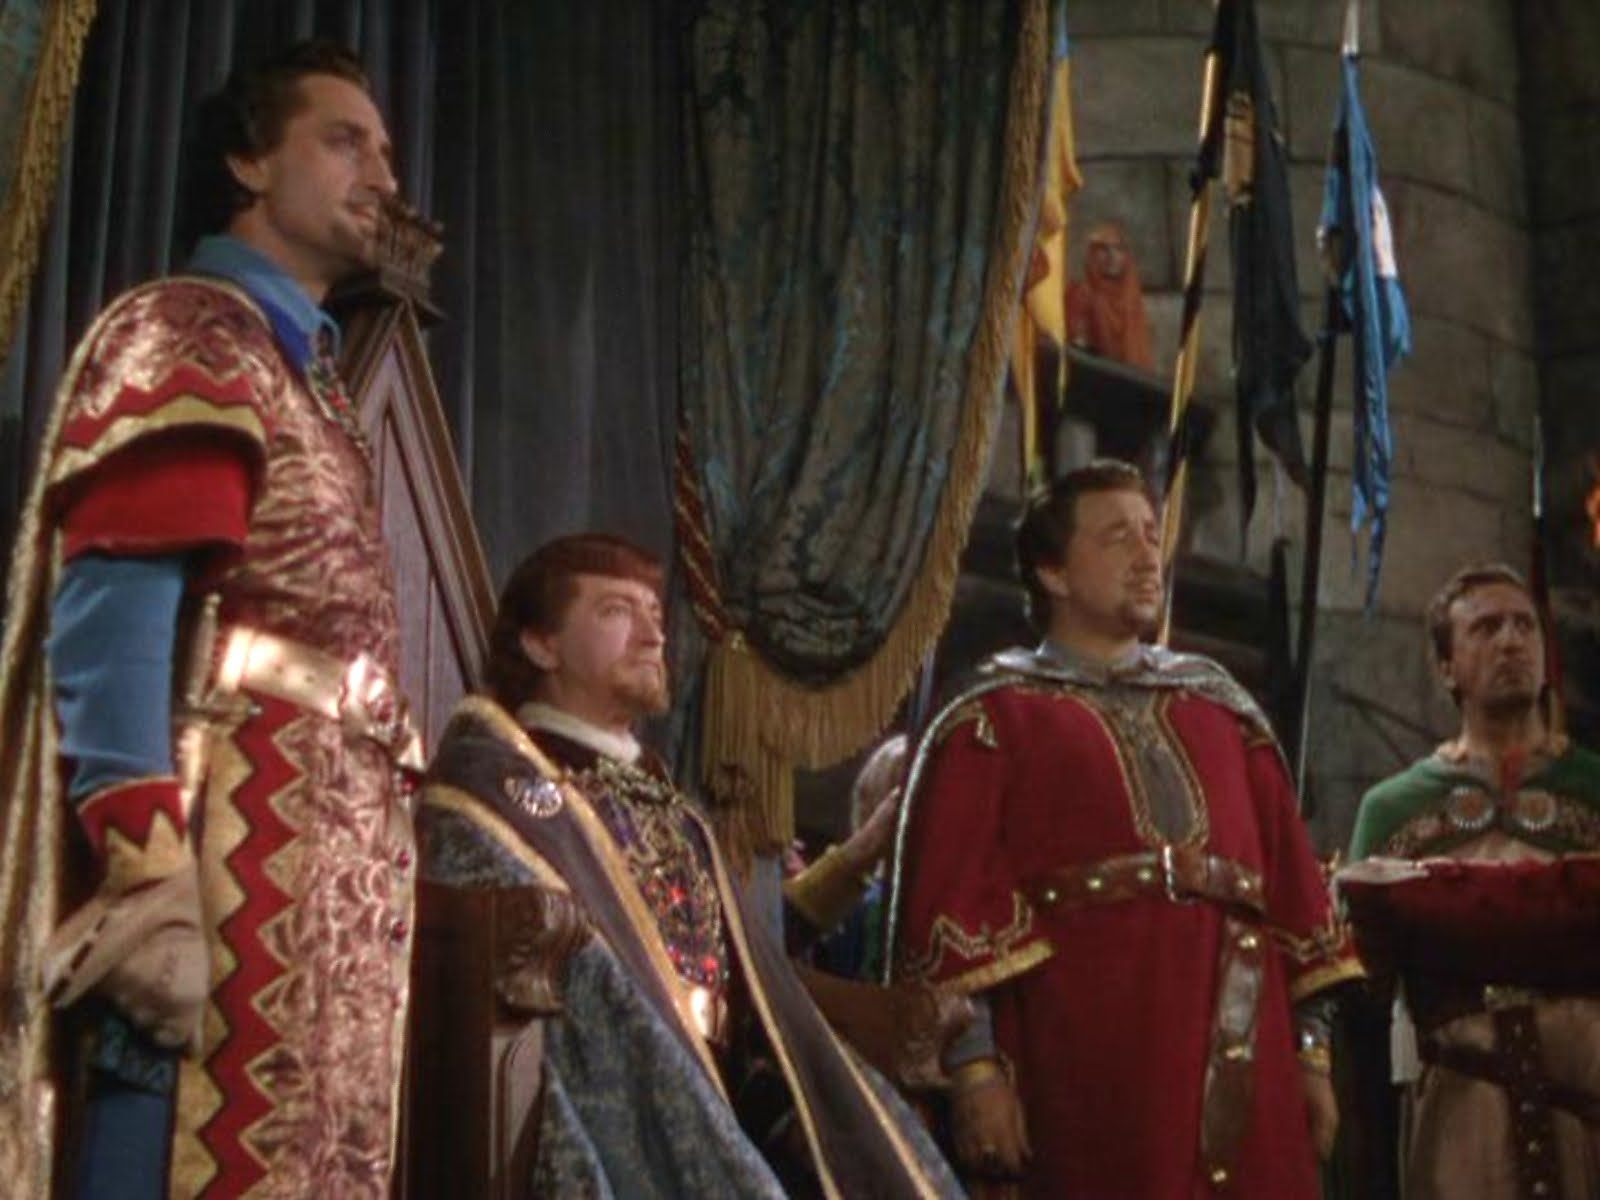 a march through film history adventures of robin hood